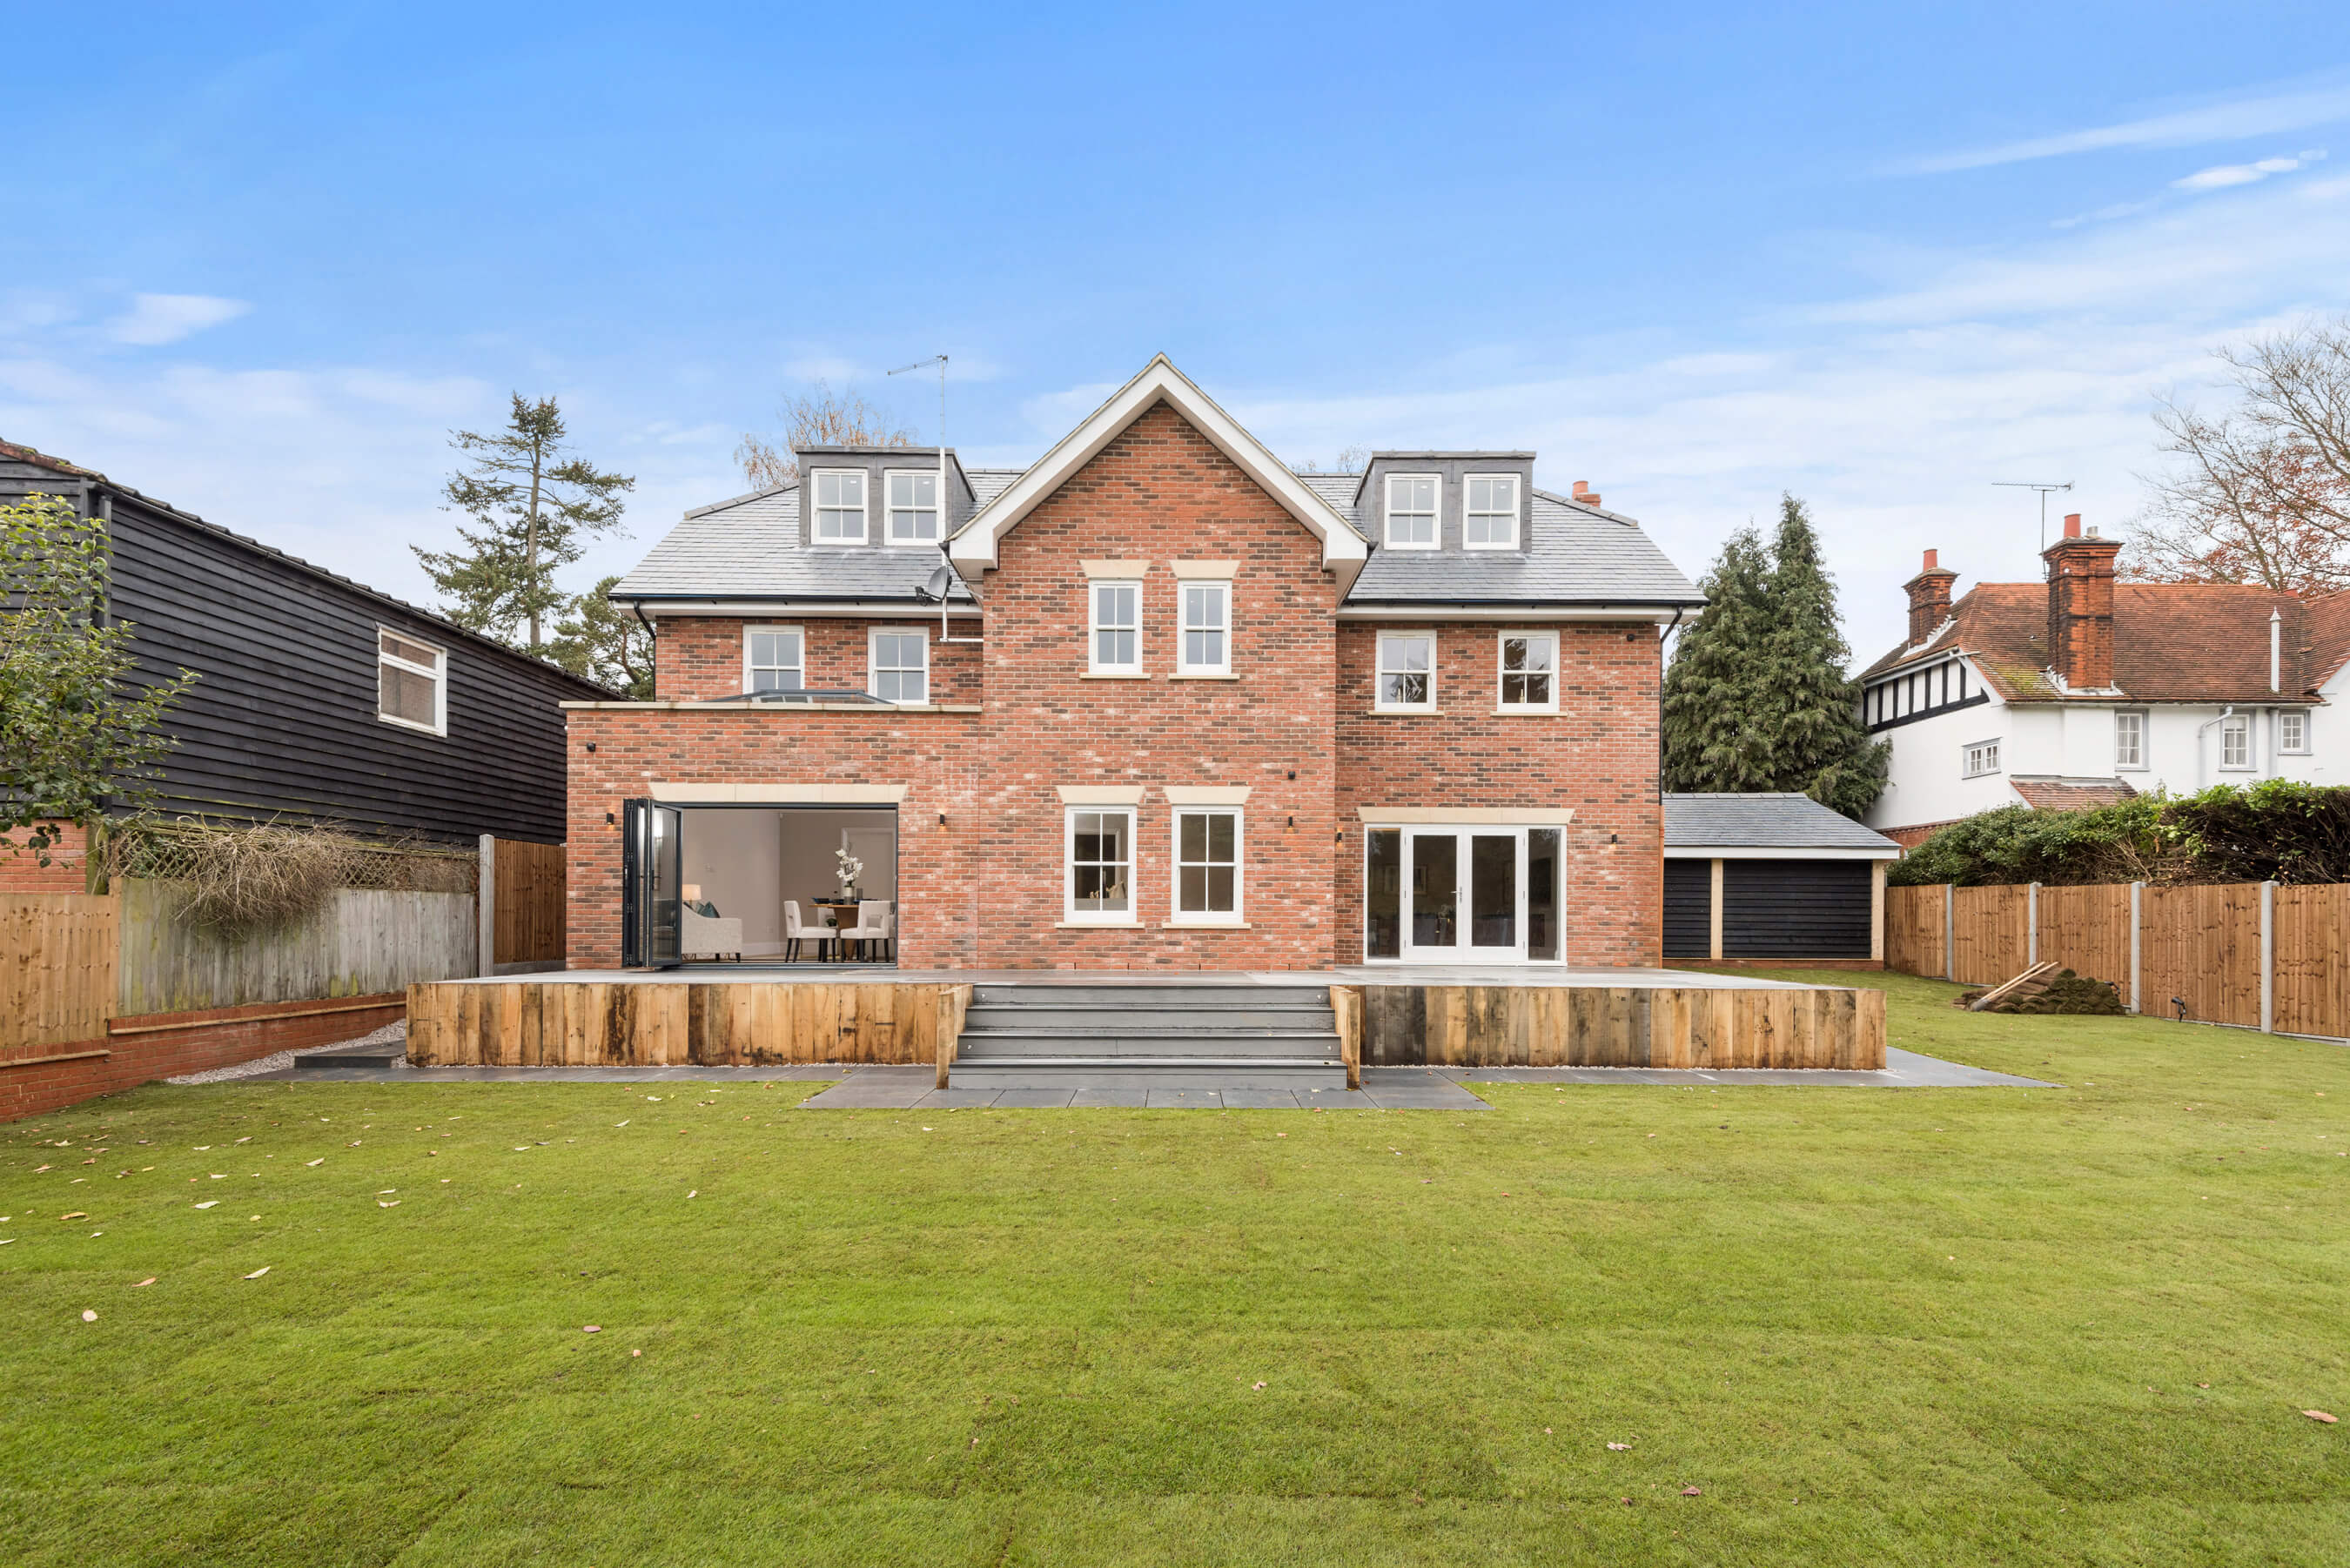 Much-Hadham-Detached---Bellis-Homes---Marek-Sikora-Photography---Large-3.jpg